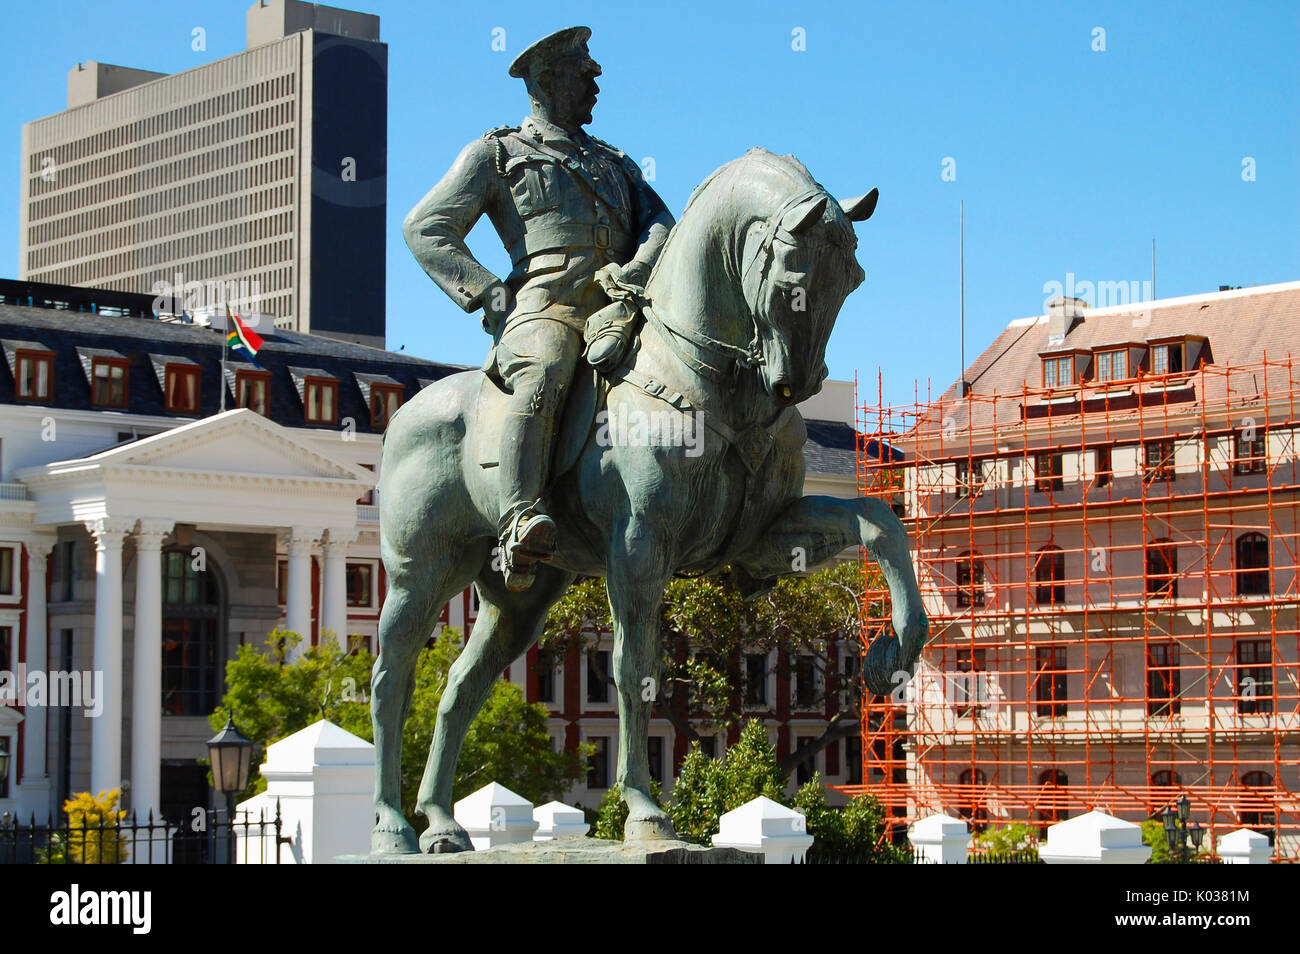 Lovis Botha Statue - Cape Town - South Africa - Stock Image